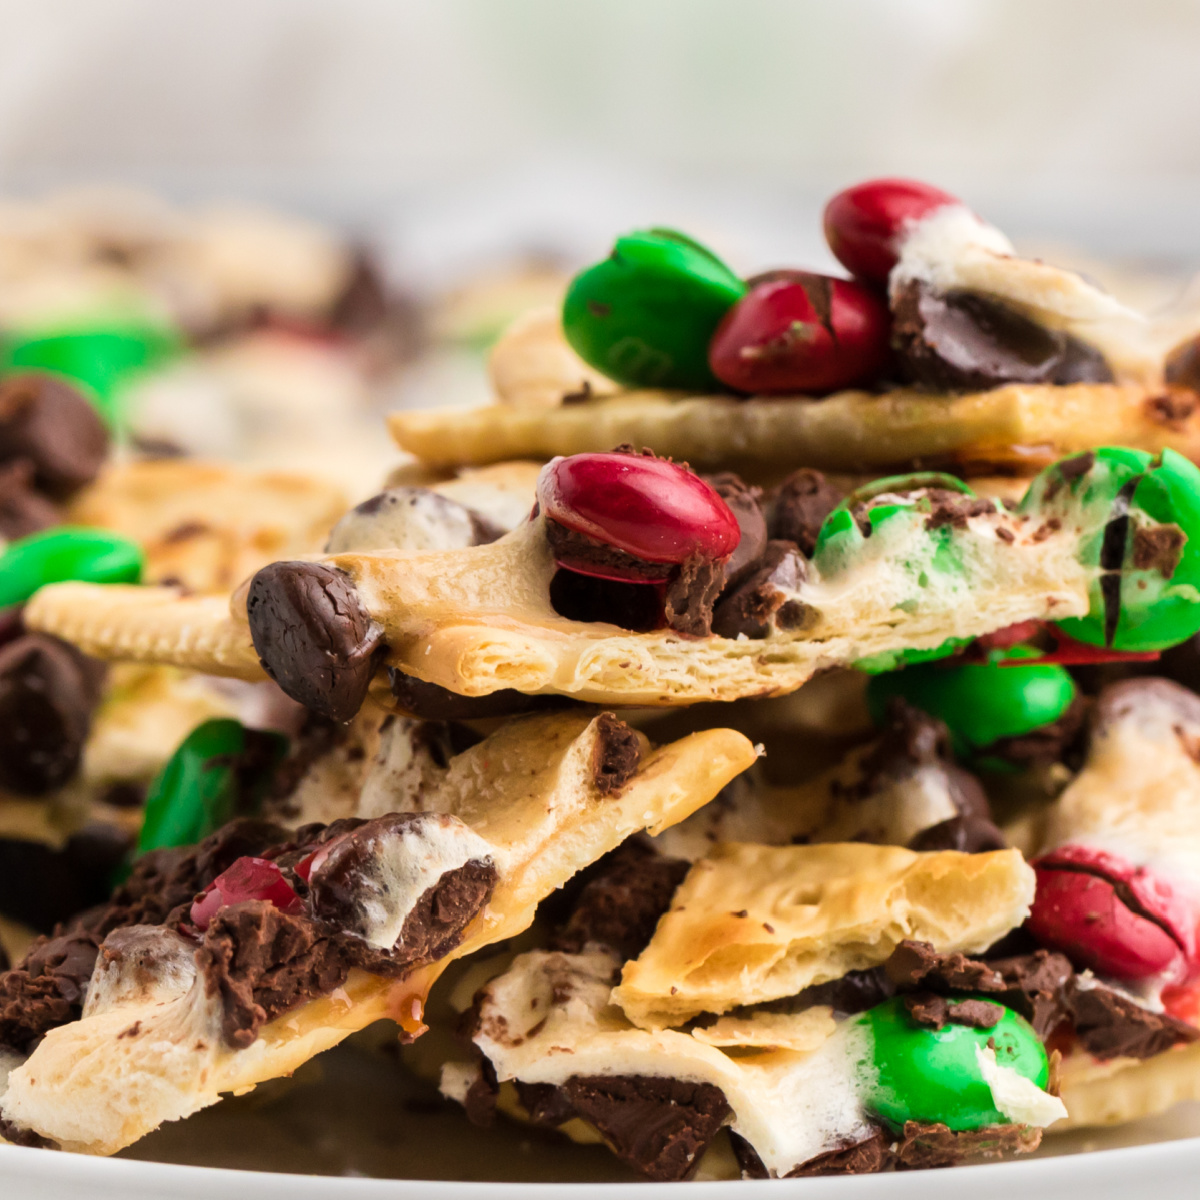 Christmas CRack Saltines piled high on a white plate.